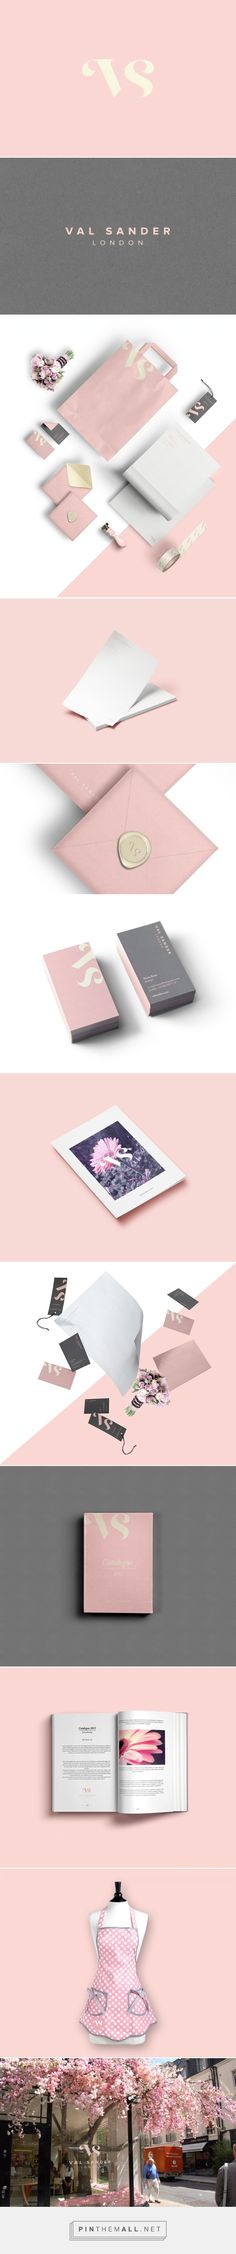 Love this color combination. Val Sander's flower shop on Behance